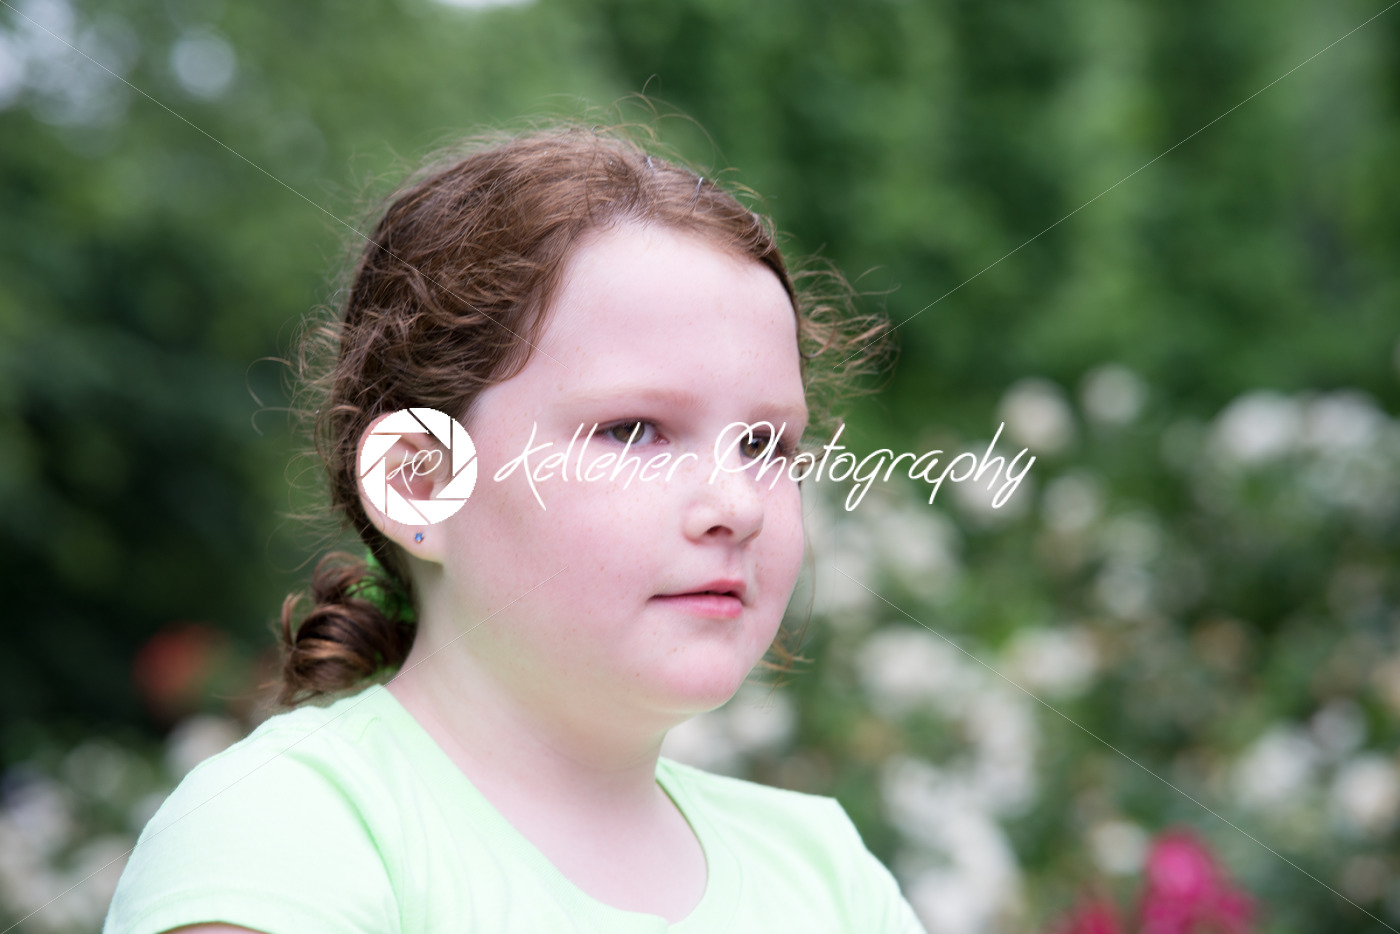 Close-up portrait of a cute girl looking away - Kelleher Photography Store